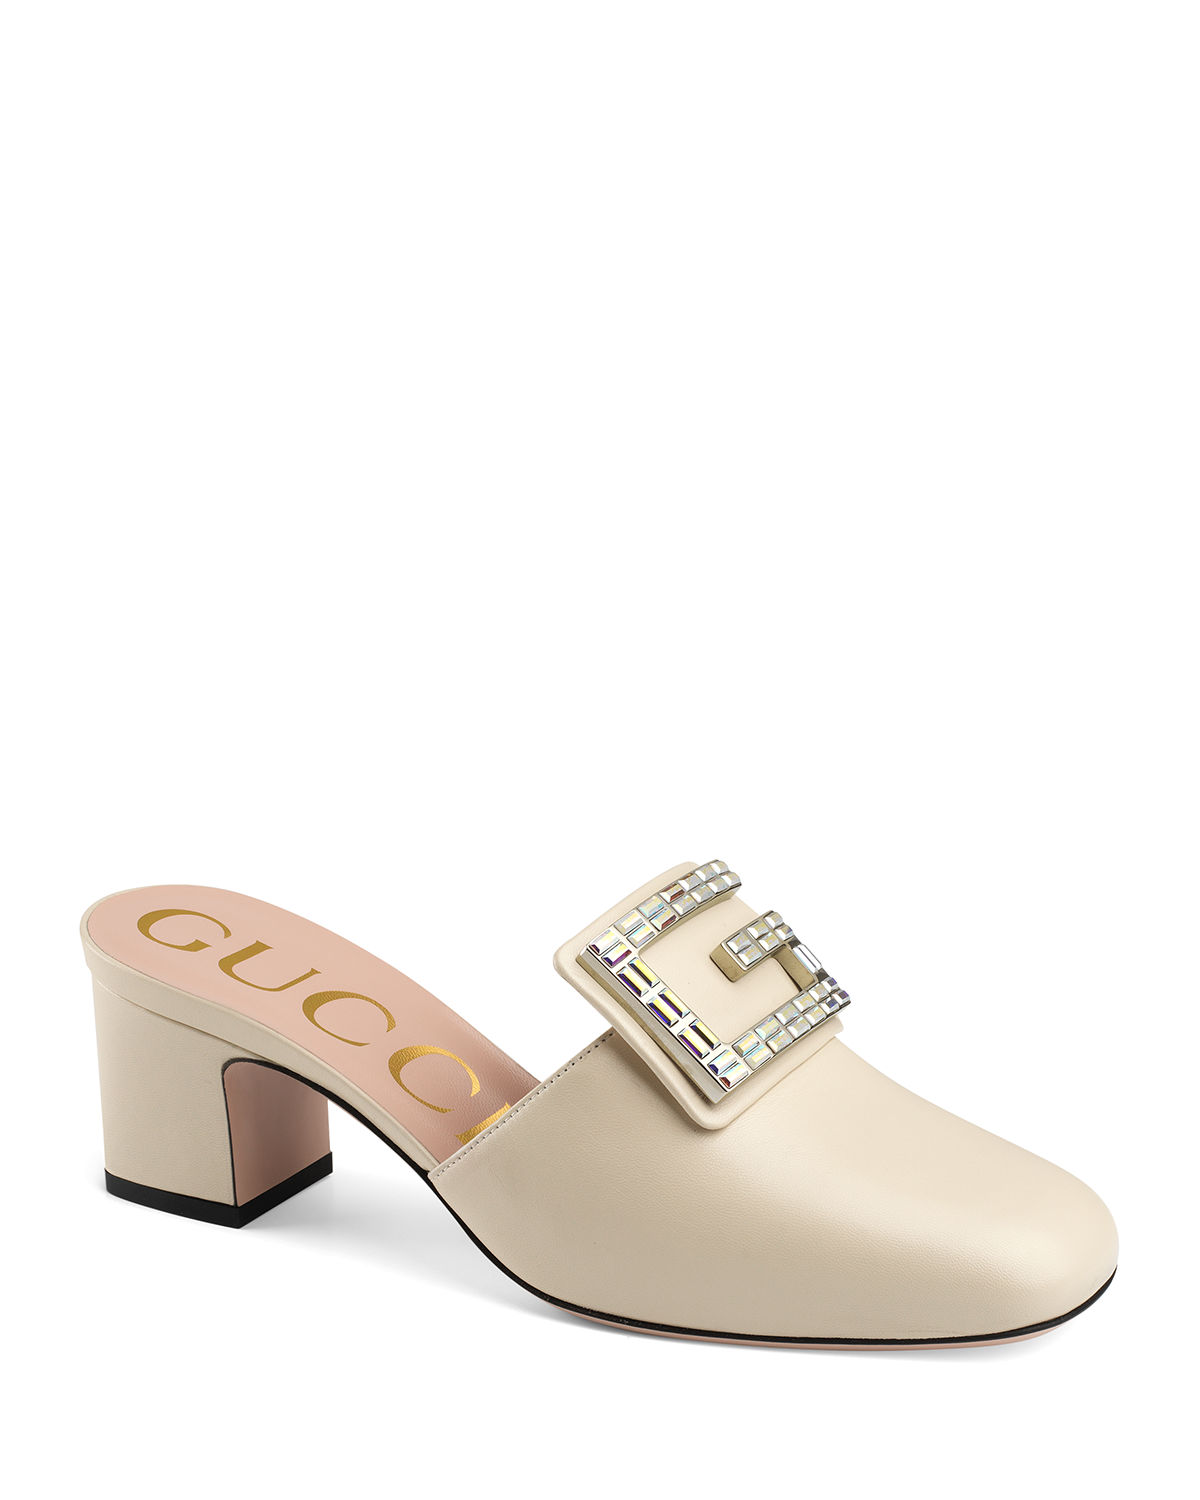 Madelyn 55mm Leather Mules with Square G